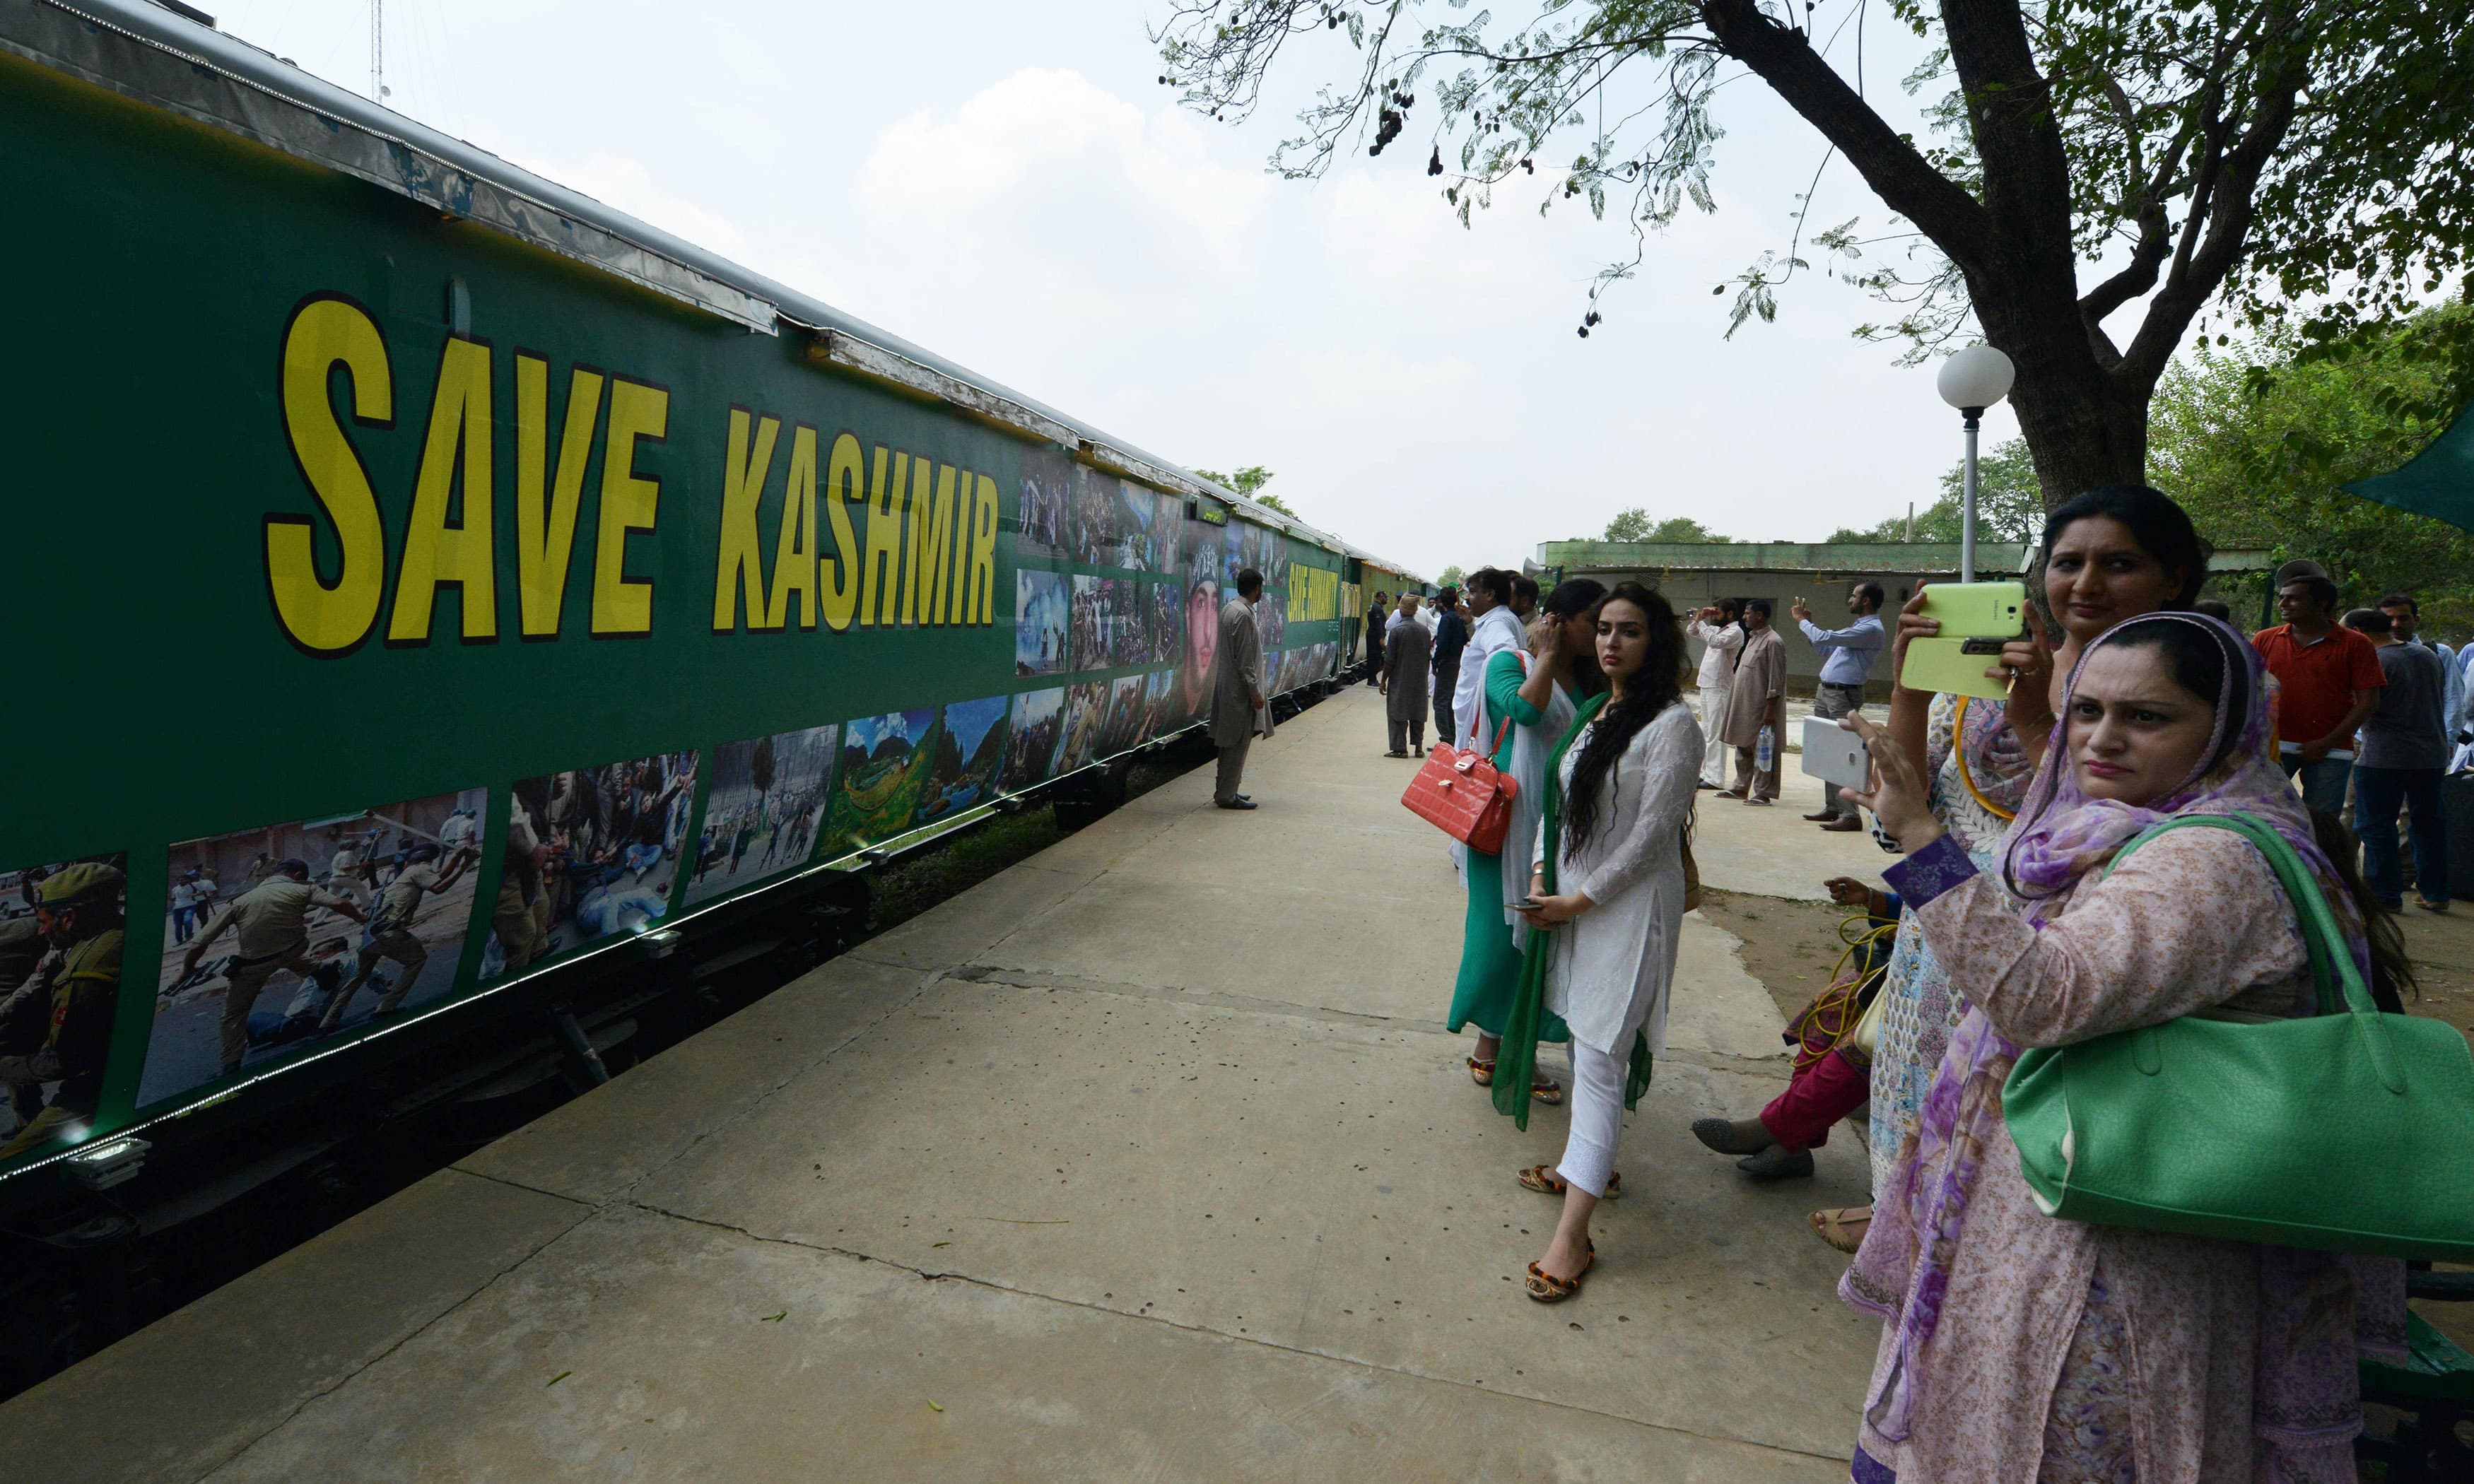 People look as the Azadi Train prepares to start its journey at Margalla Railway Station. —AFP